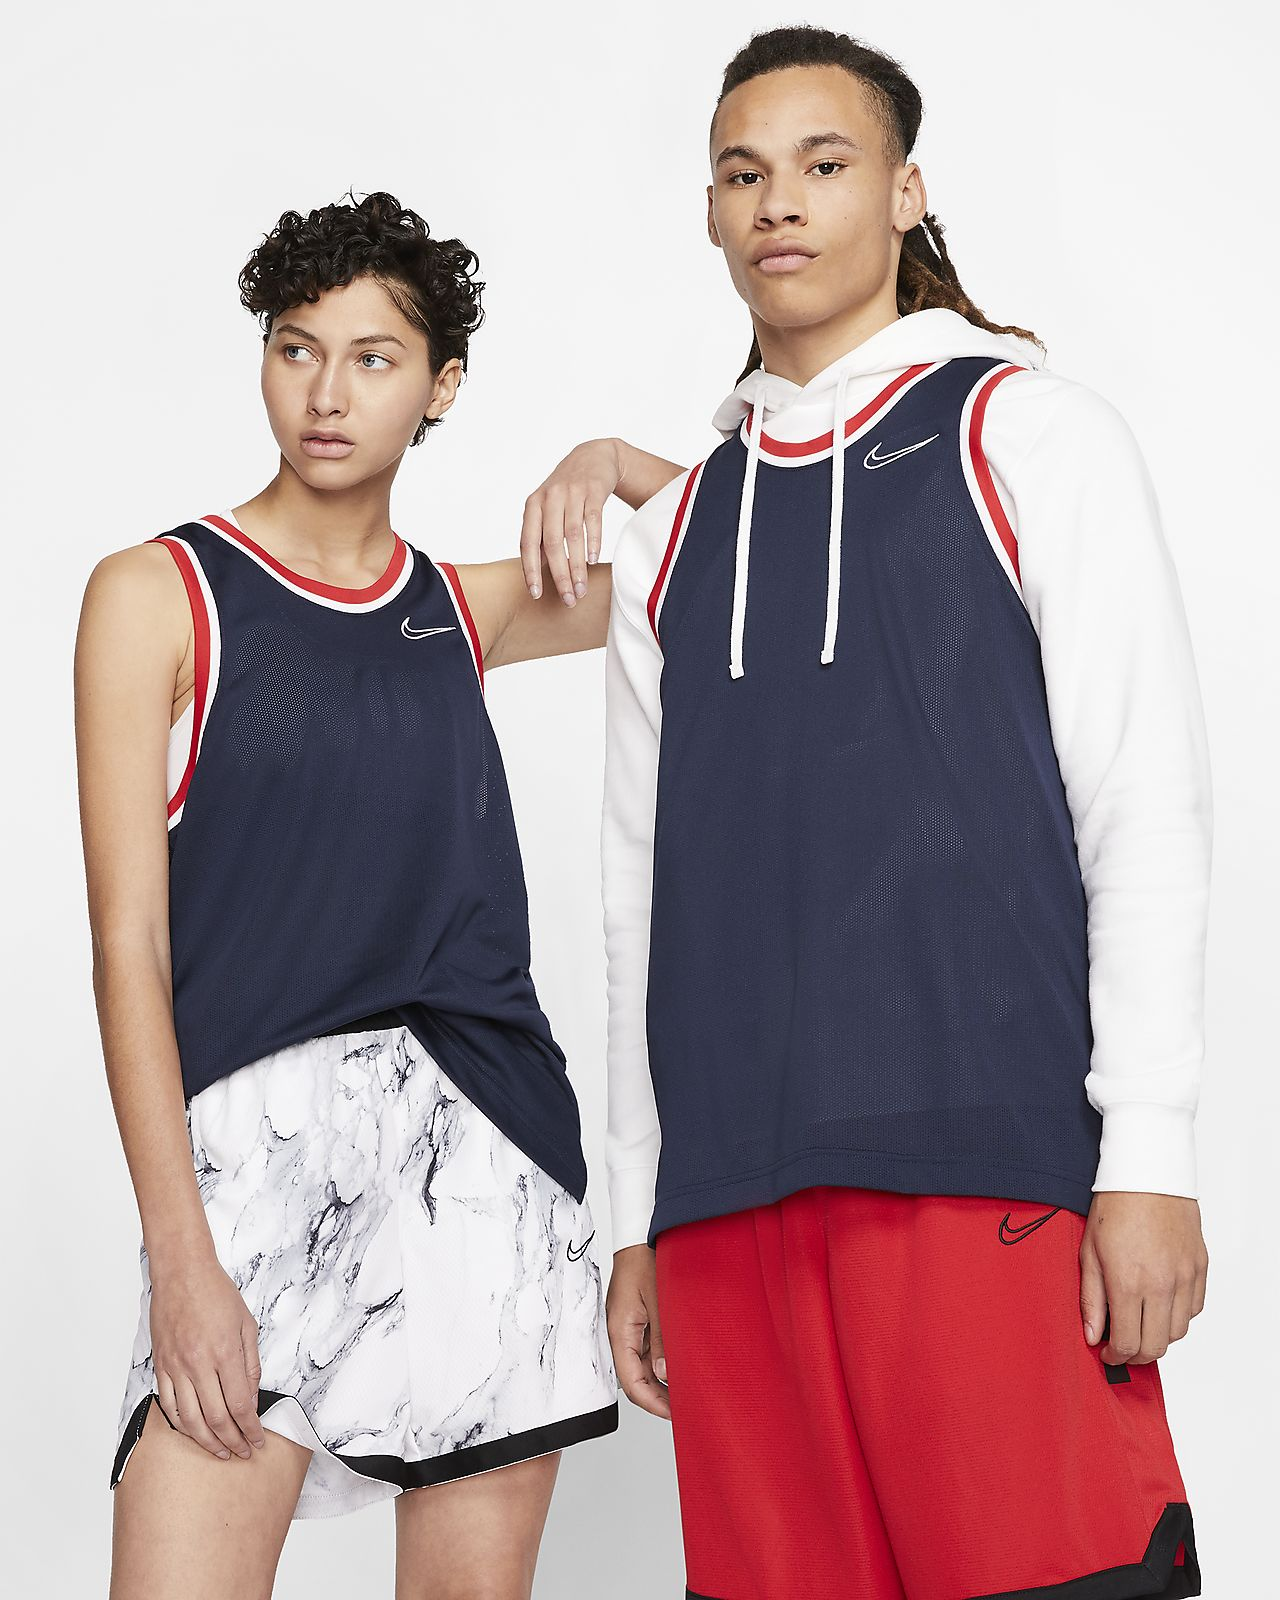 Nike Dri-FIT Classic Basketball Jersey